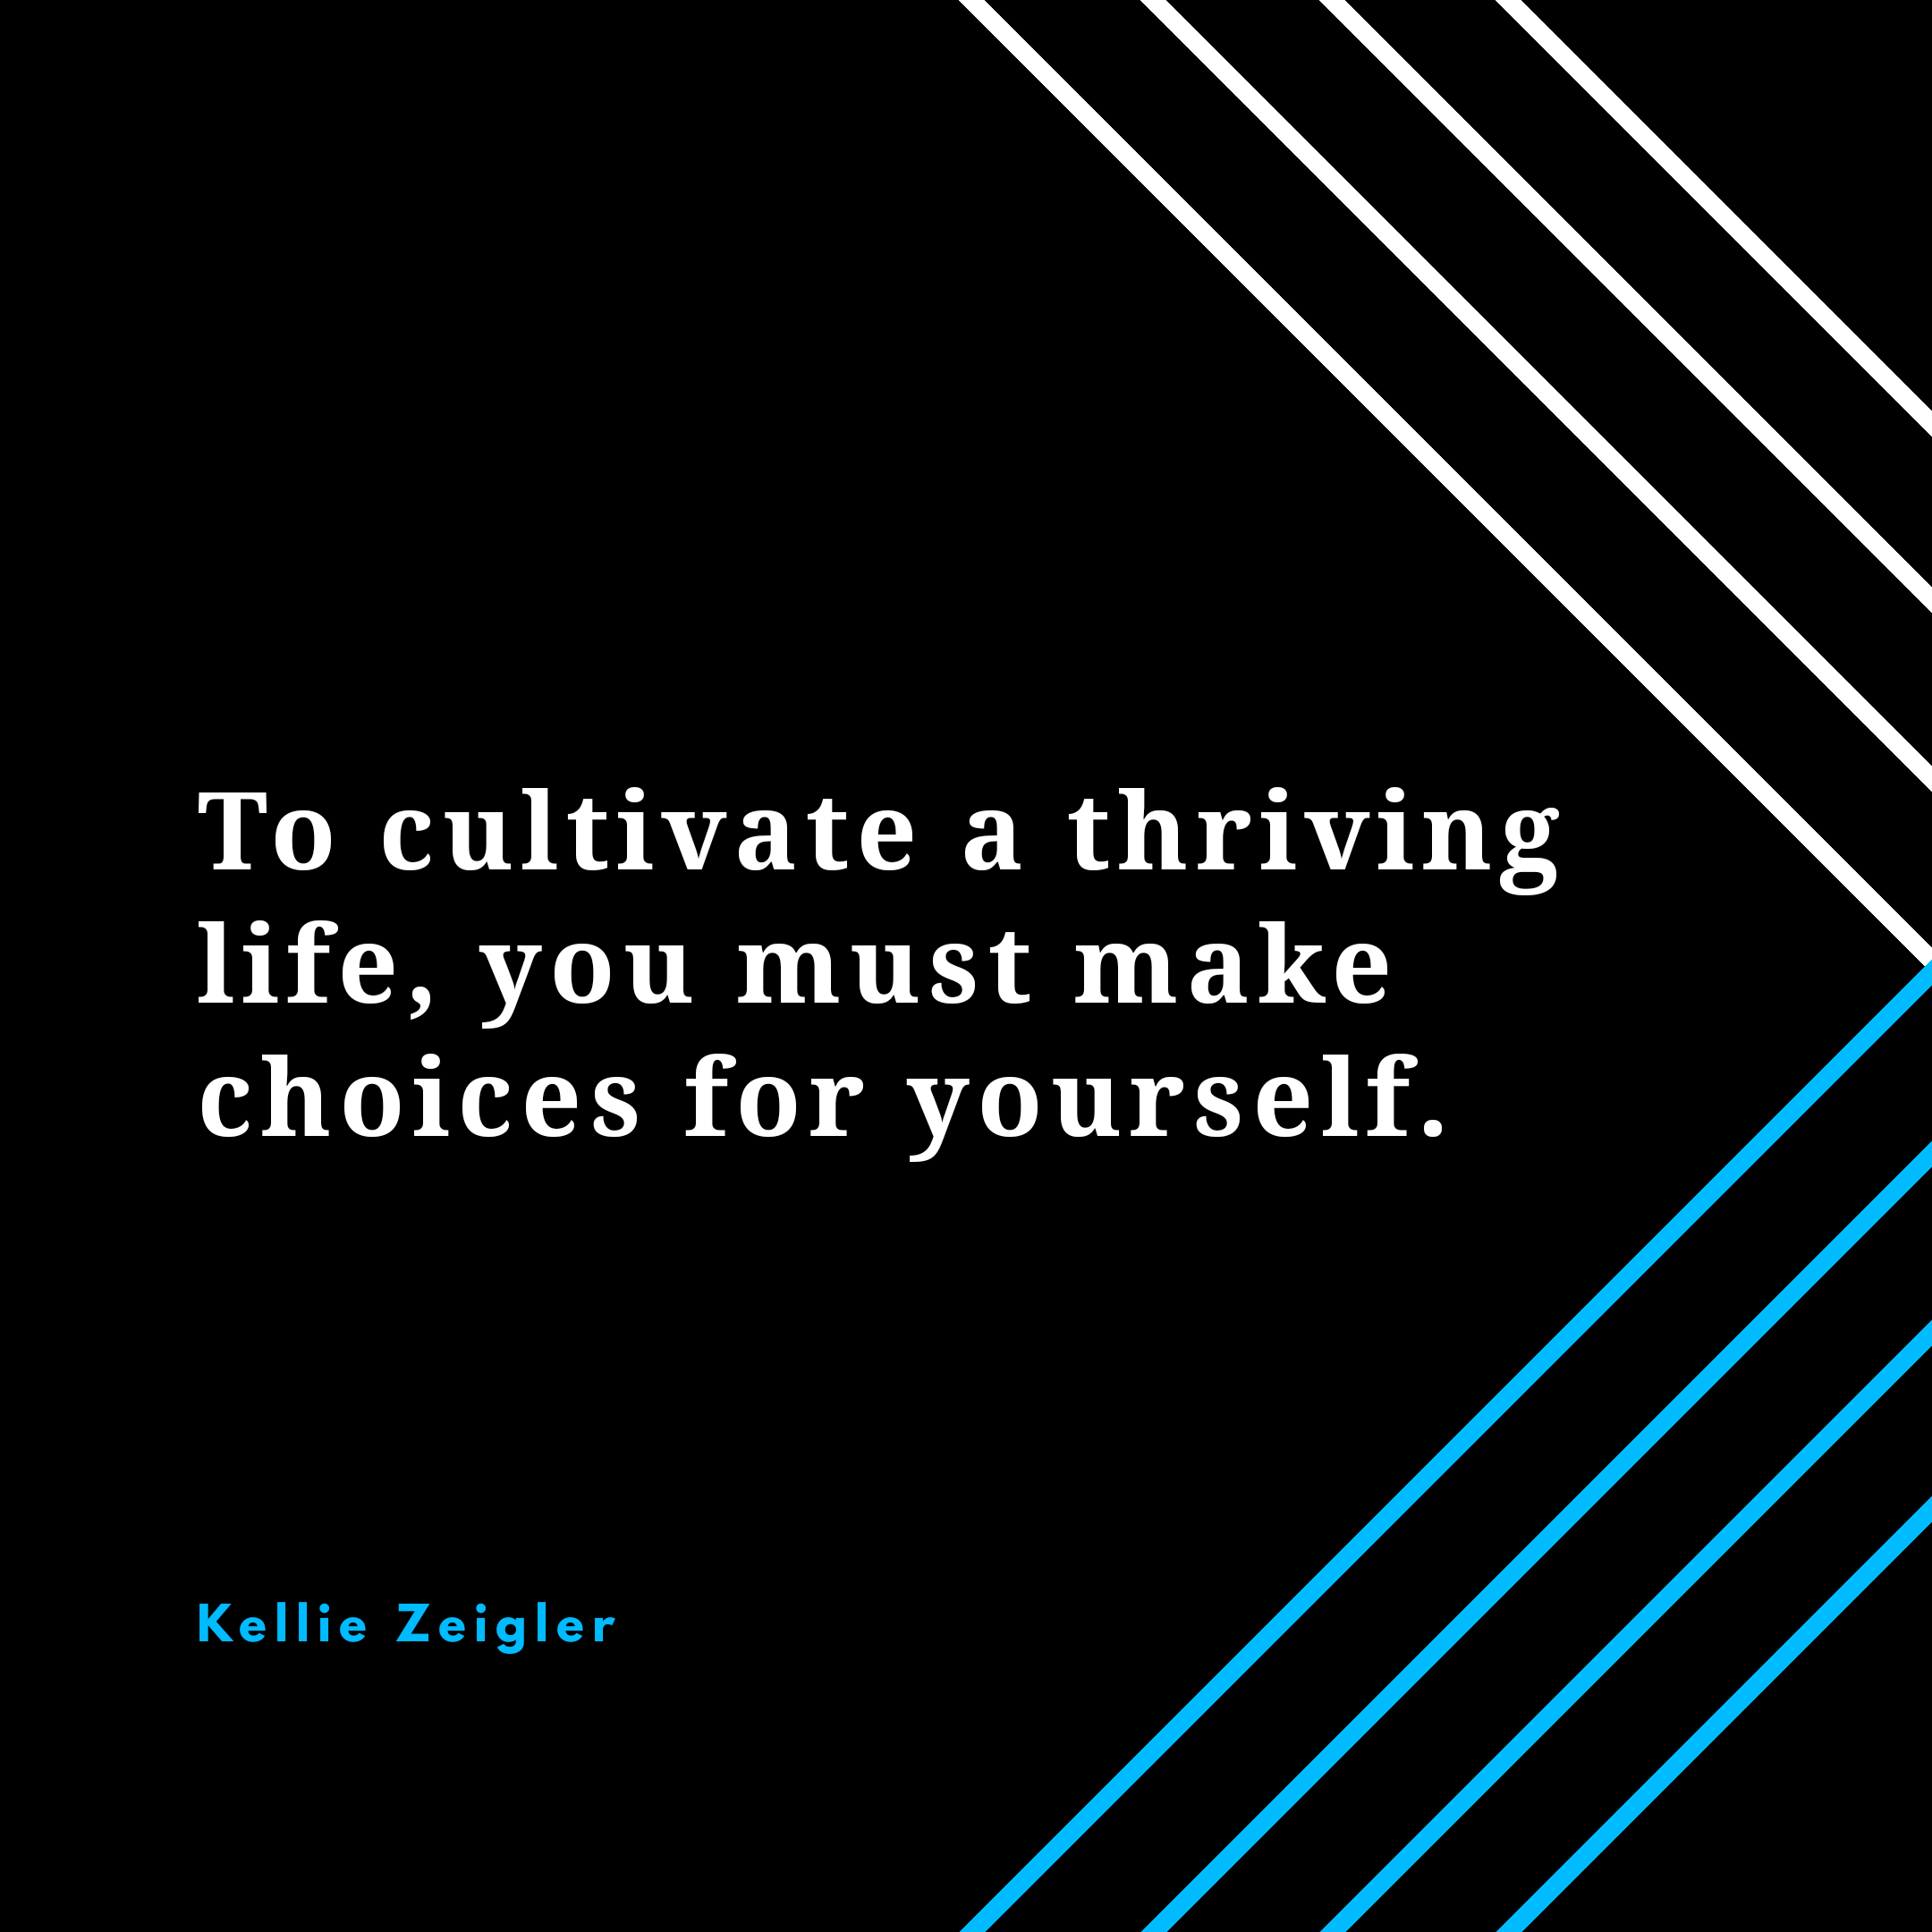 Make your own choices to thrive